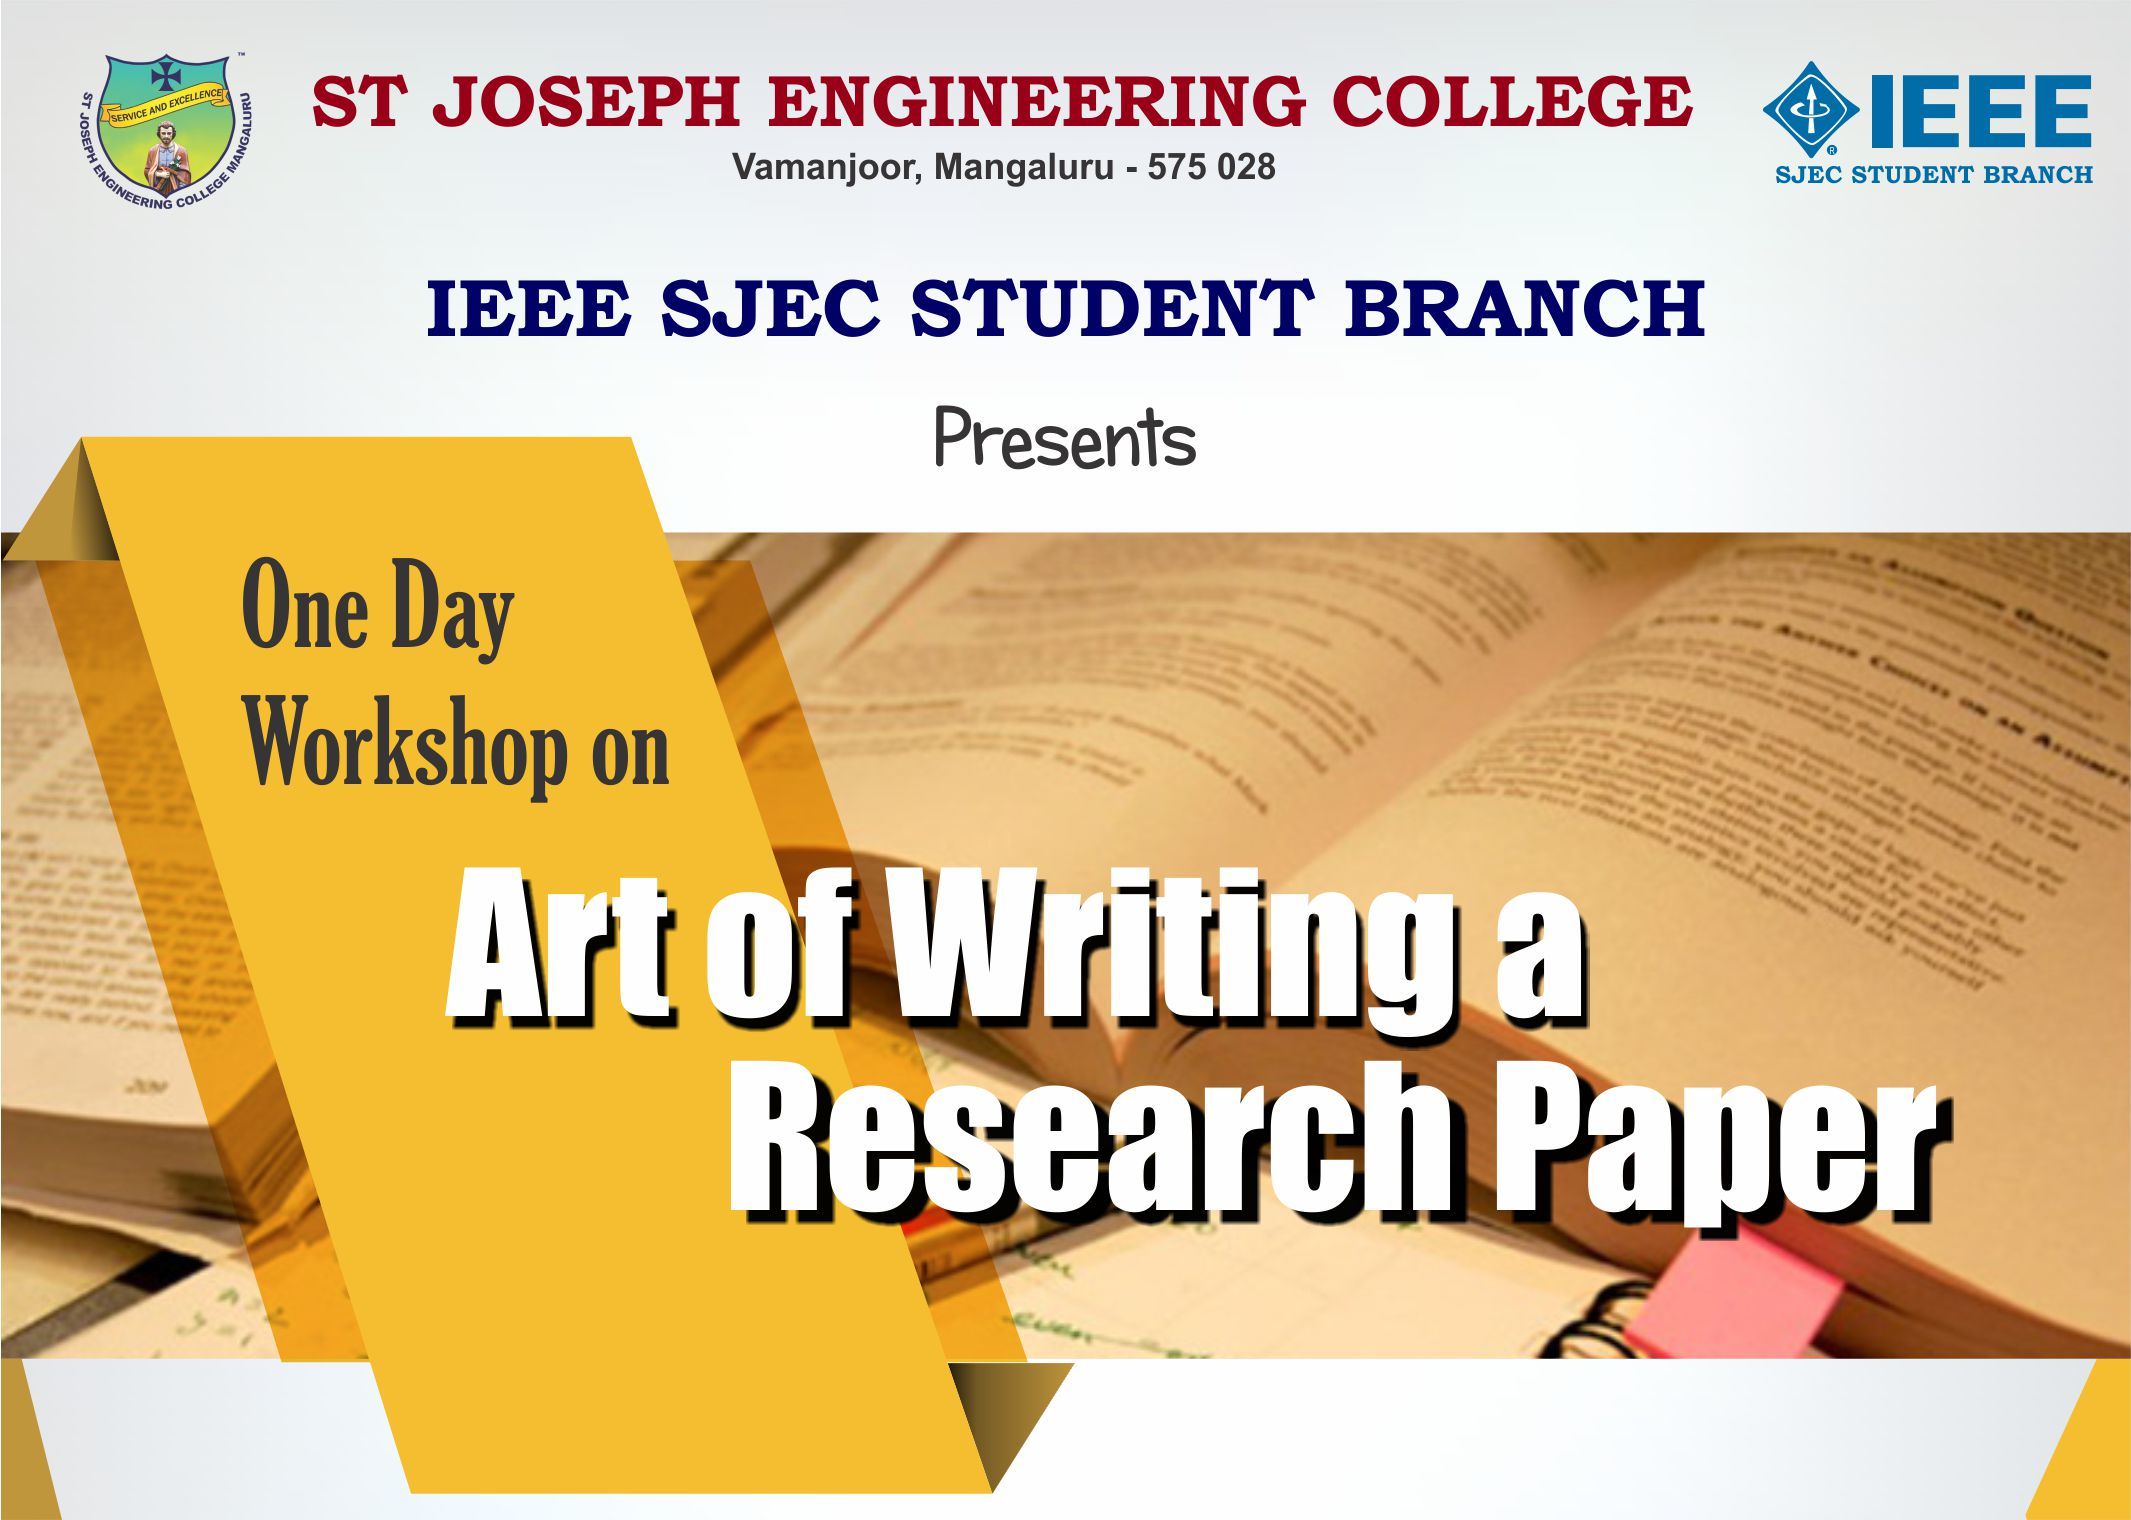 005 Research Paper About Writing Workshop Rare Creative Expository Topics On Indian In English Full